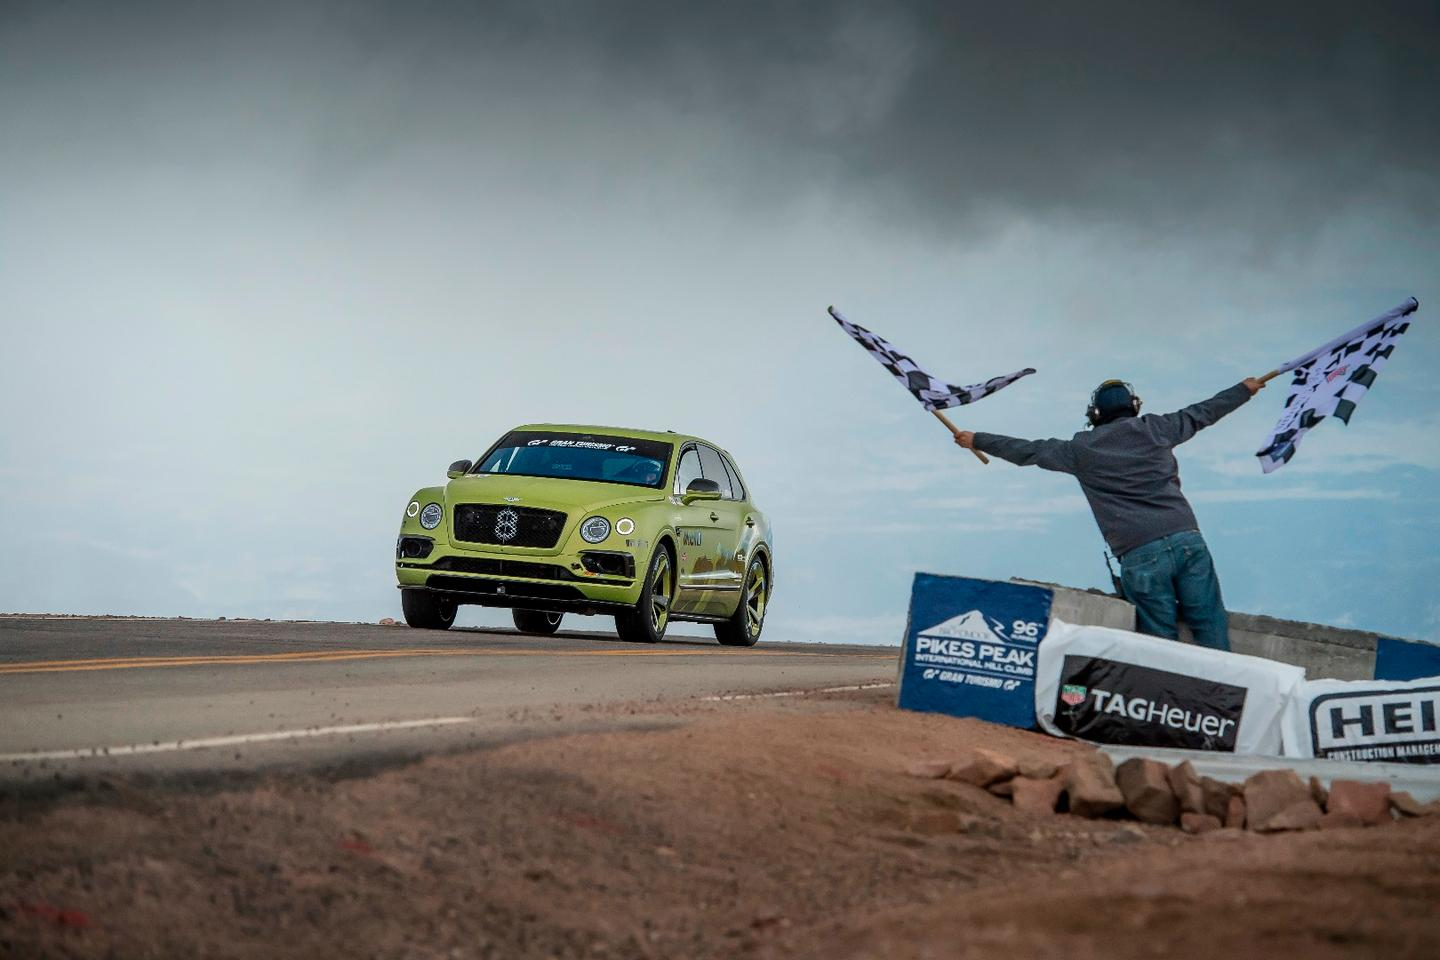 The Bentley Bentayga takes the checkered flag at the 2018 Pikes Peak International Hill Climb, breaking the record for fastest sport utility run